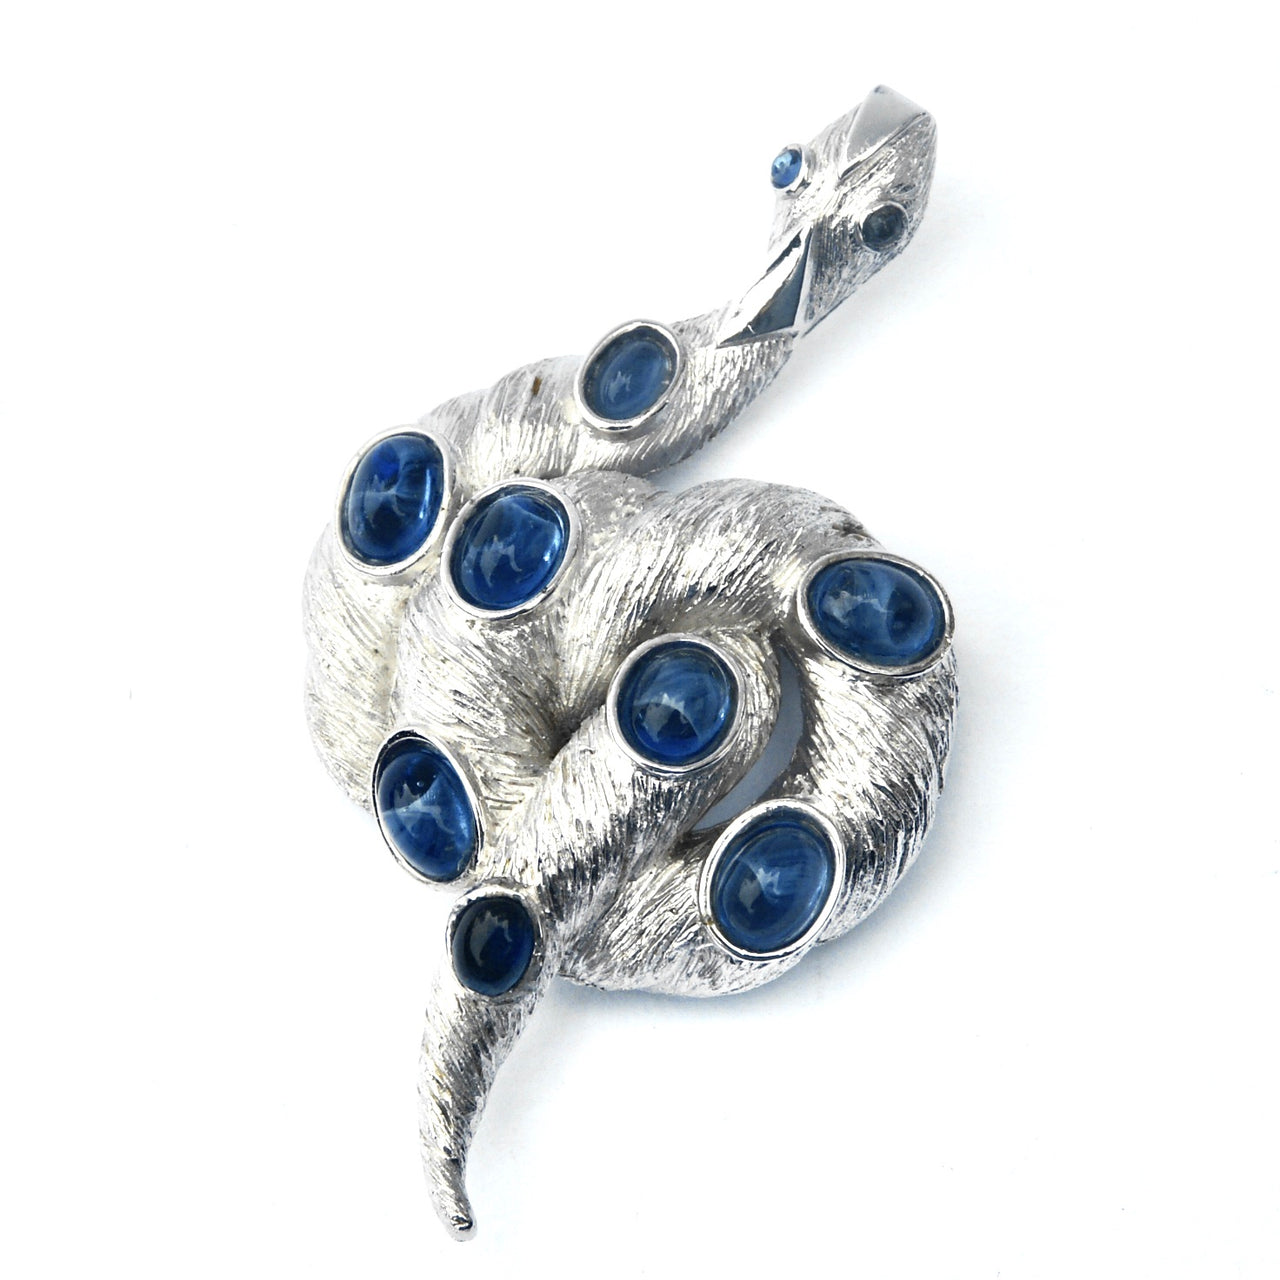 Eclectica Vintage Jewellery | UK | 1960s Vintage Trifari Serpent Snake Brooch, Blue